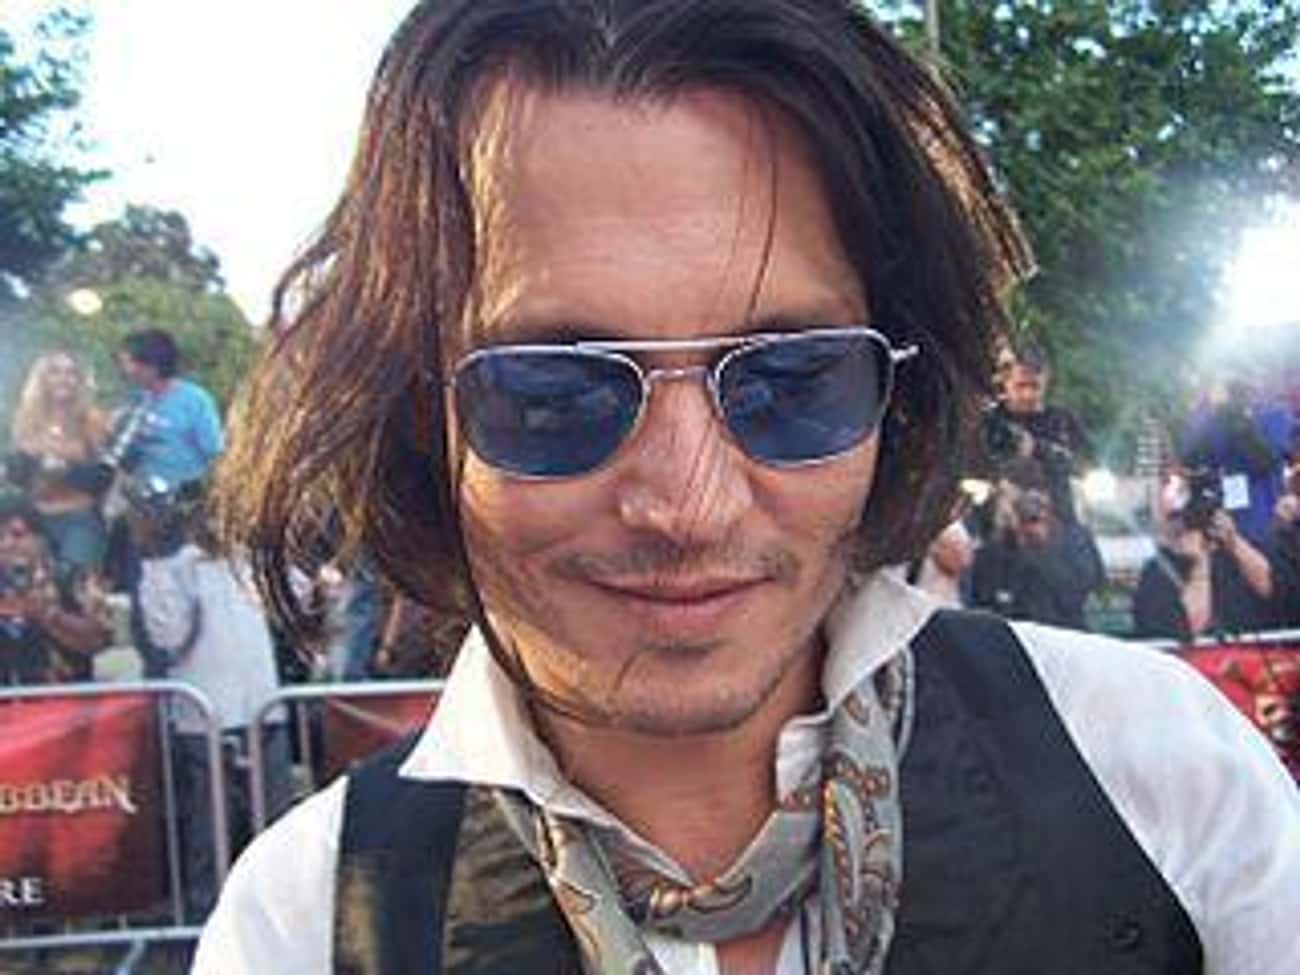 Johnny Depp Sold Ballpoint Pen is listed (or ranked) 4 on the list Celebrities Who Had Weird Jobs Before They Were Famous